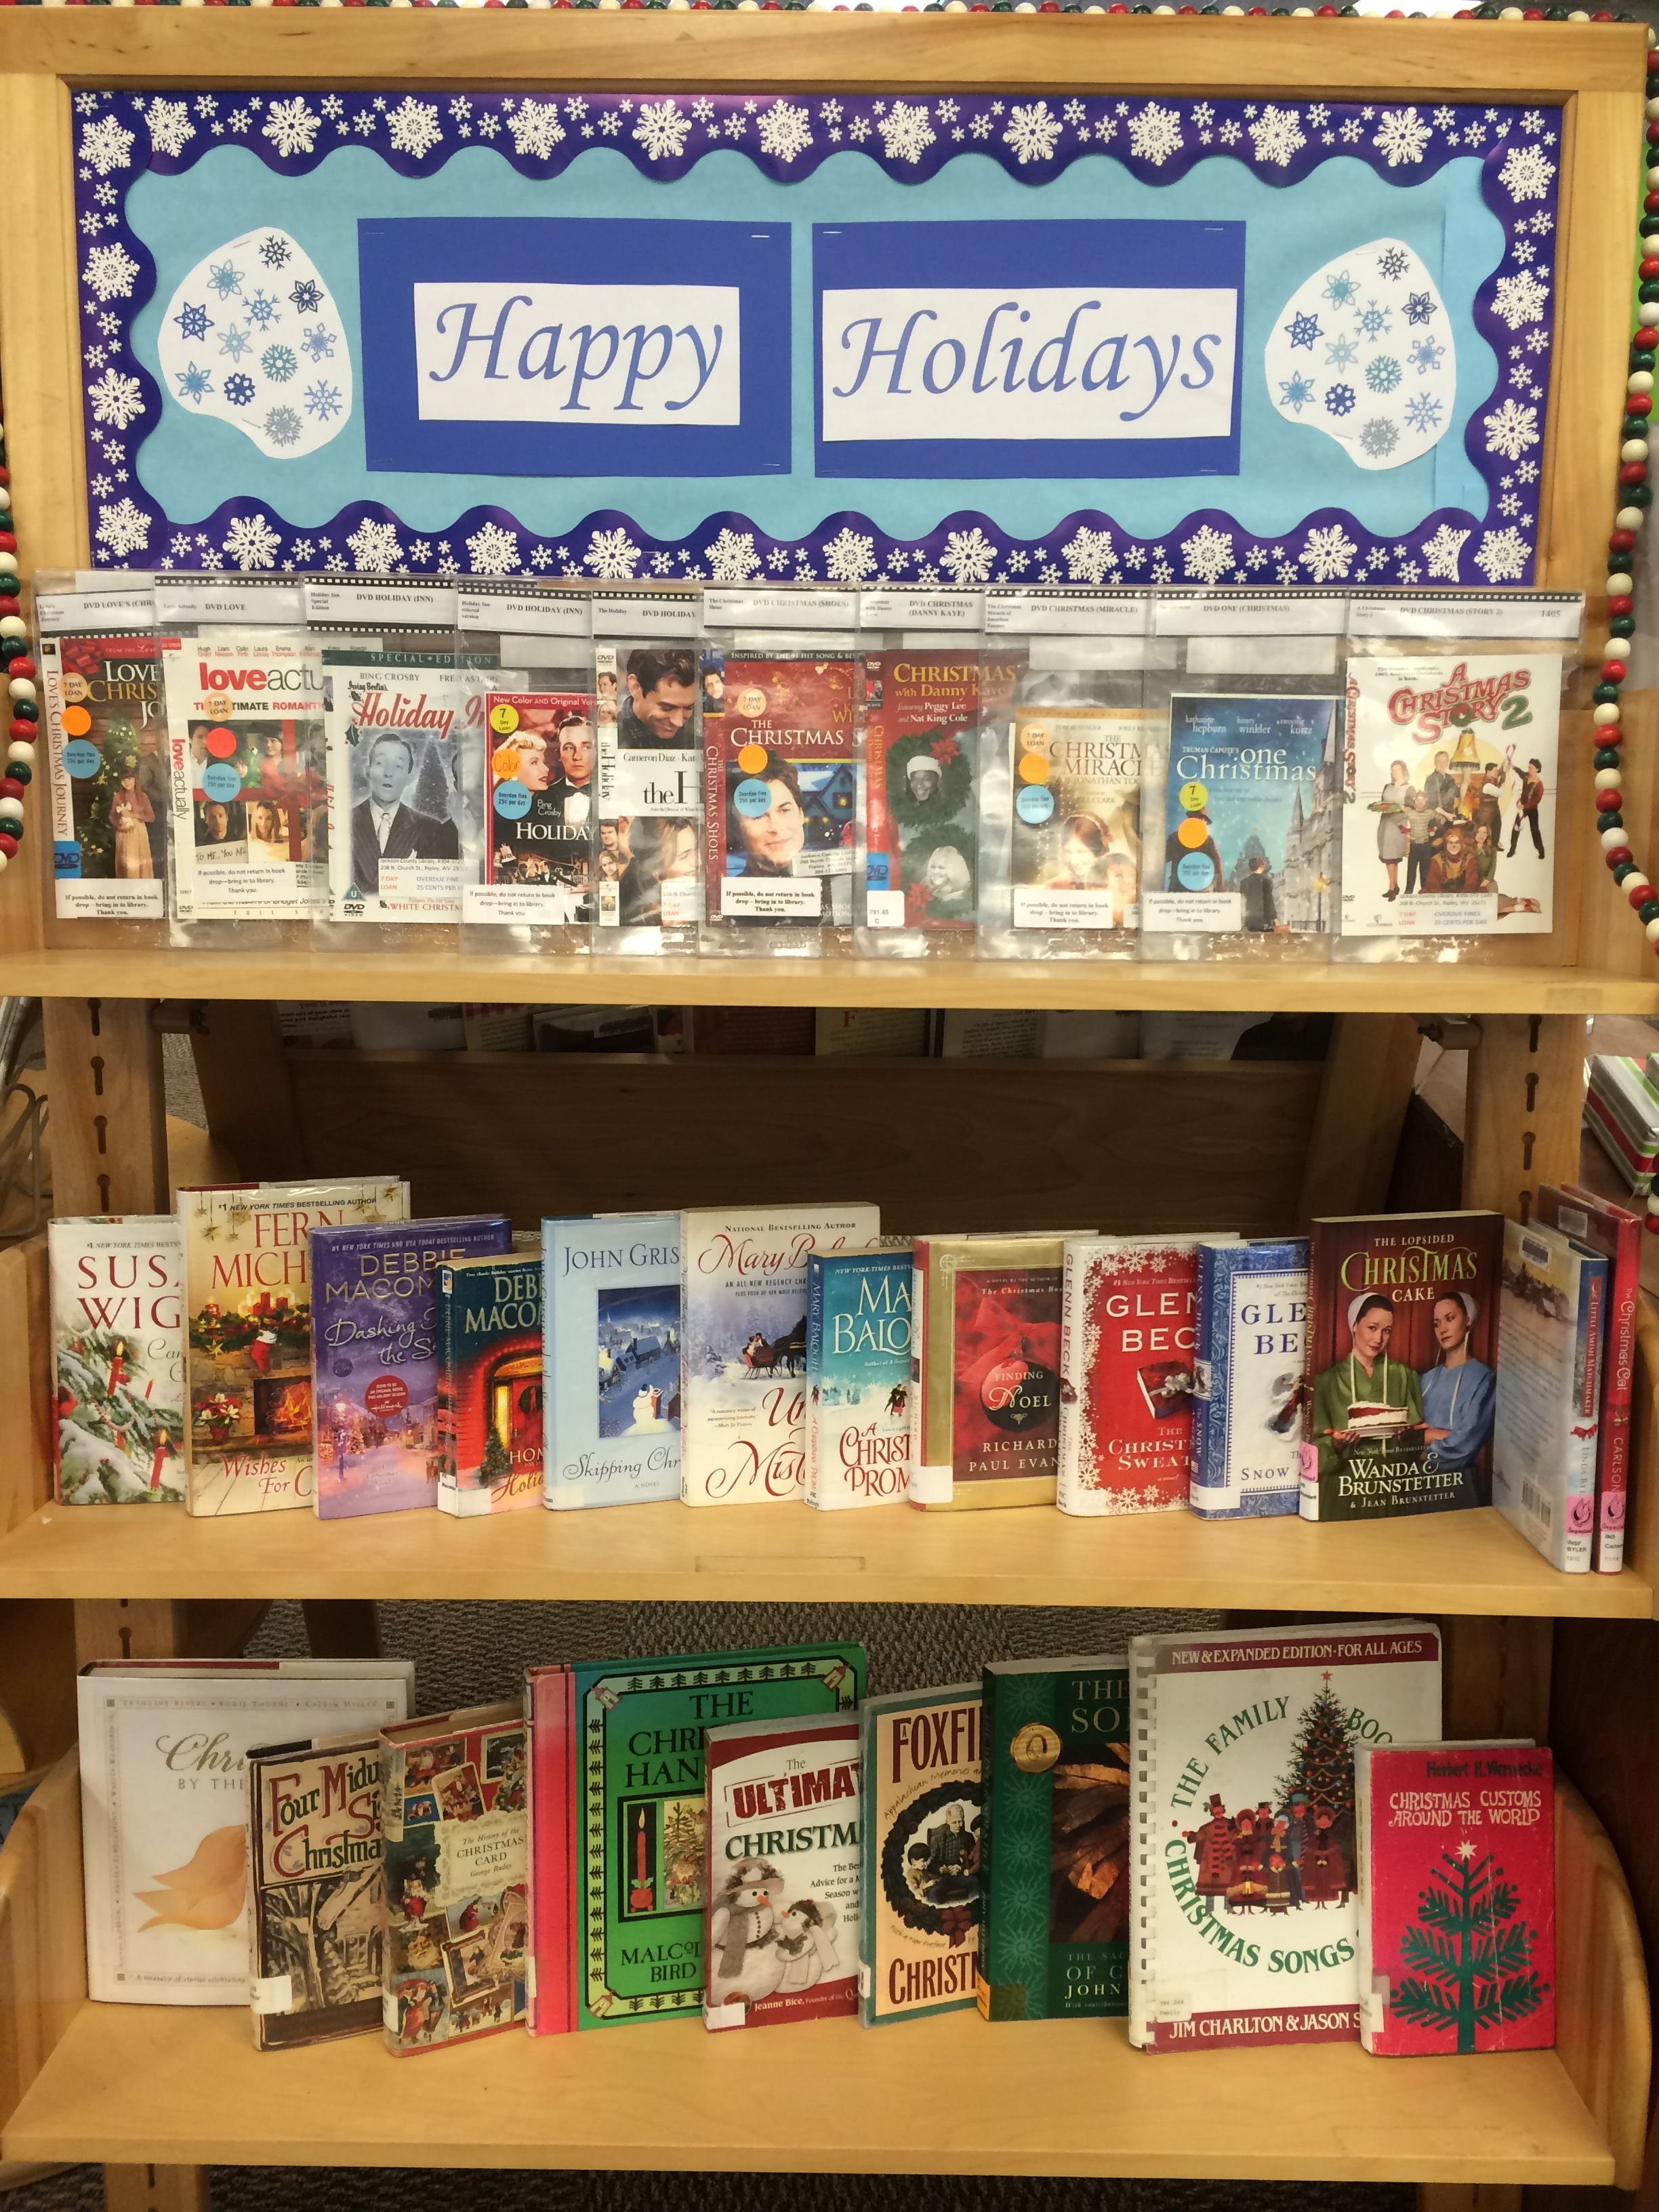 Happy Holidays library display. DVDs on top shelf, fiction in the middle, non-fiction on the bottom